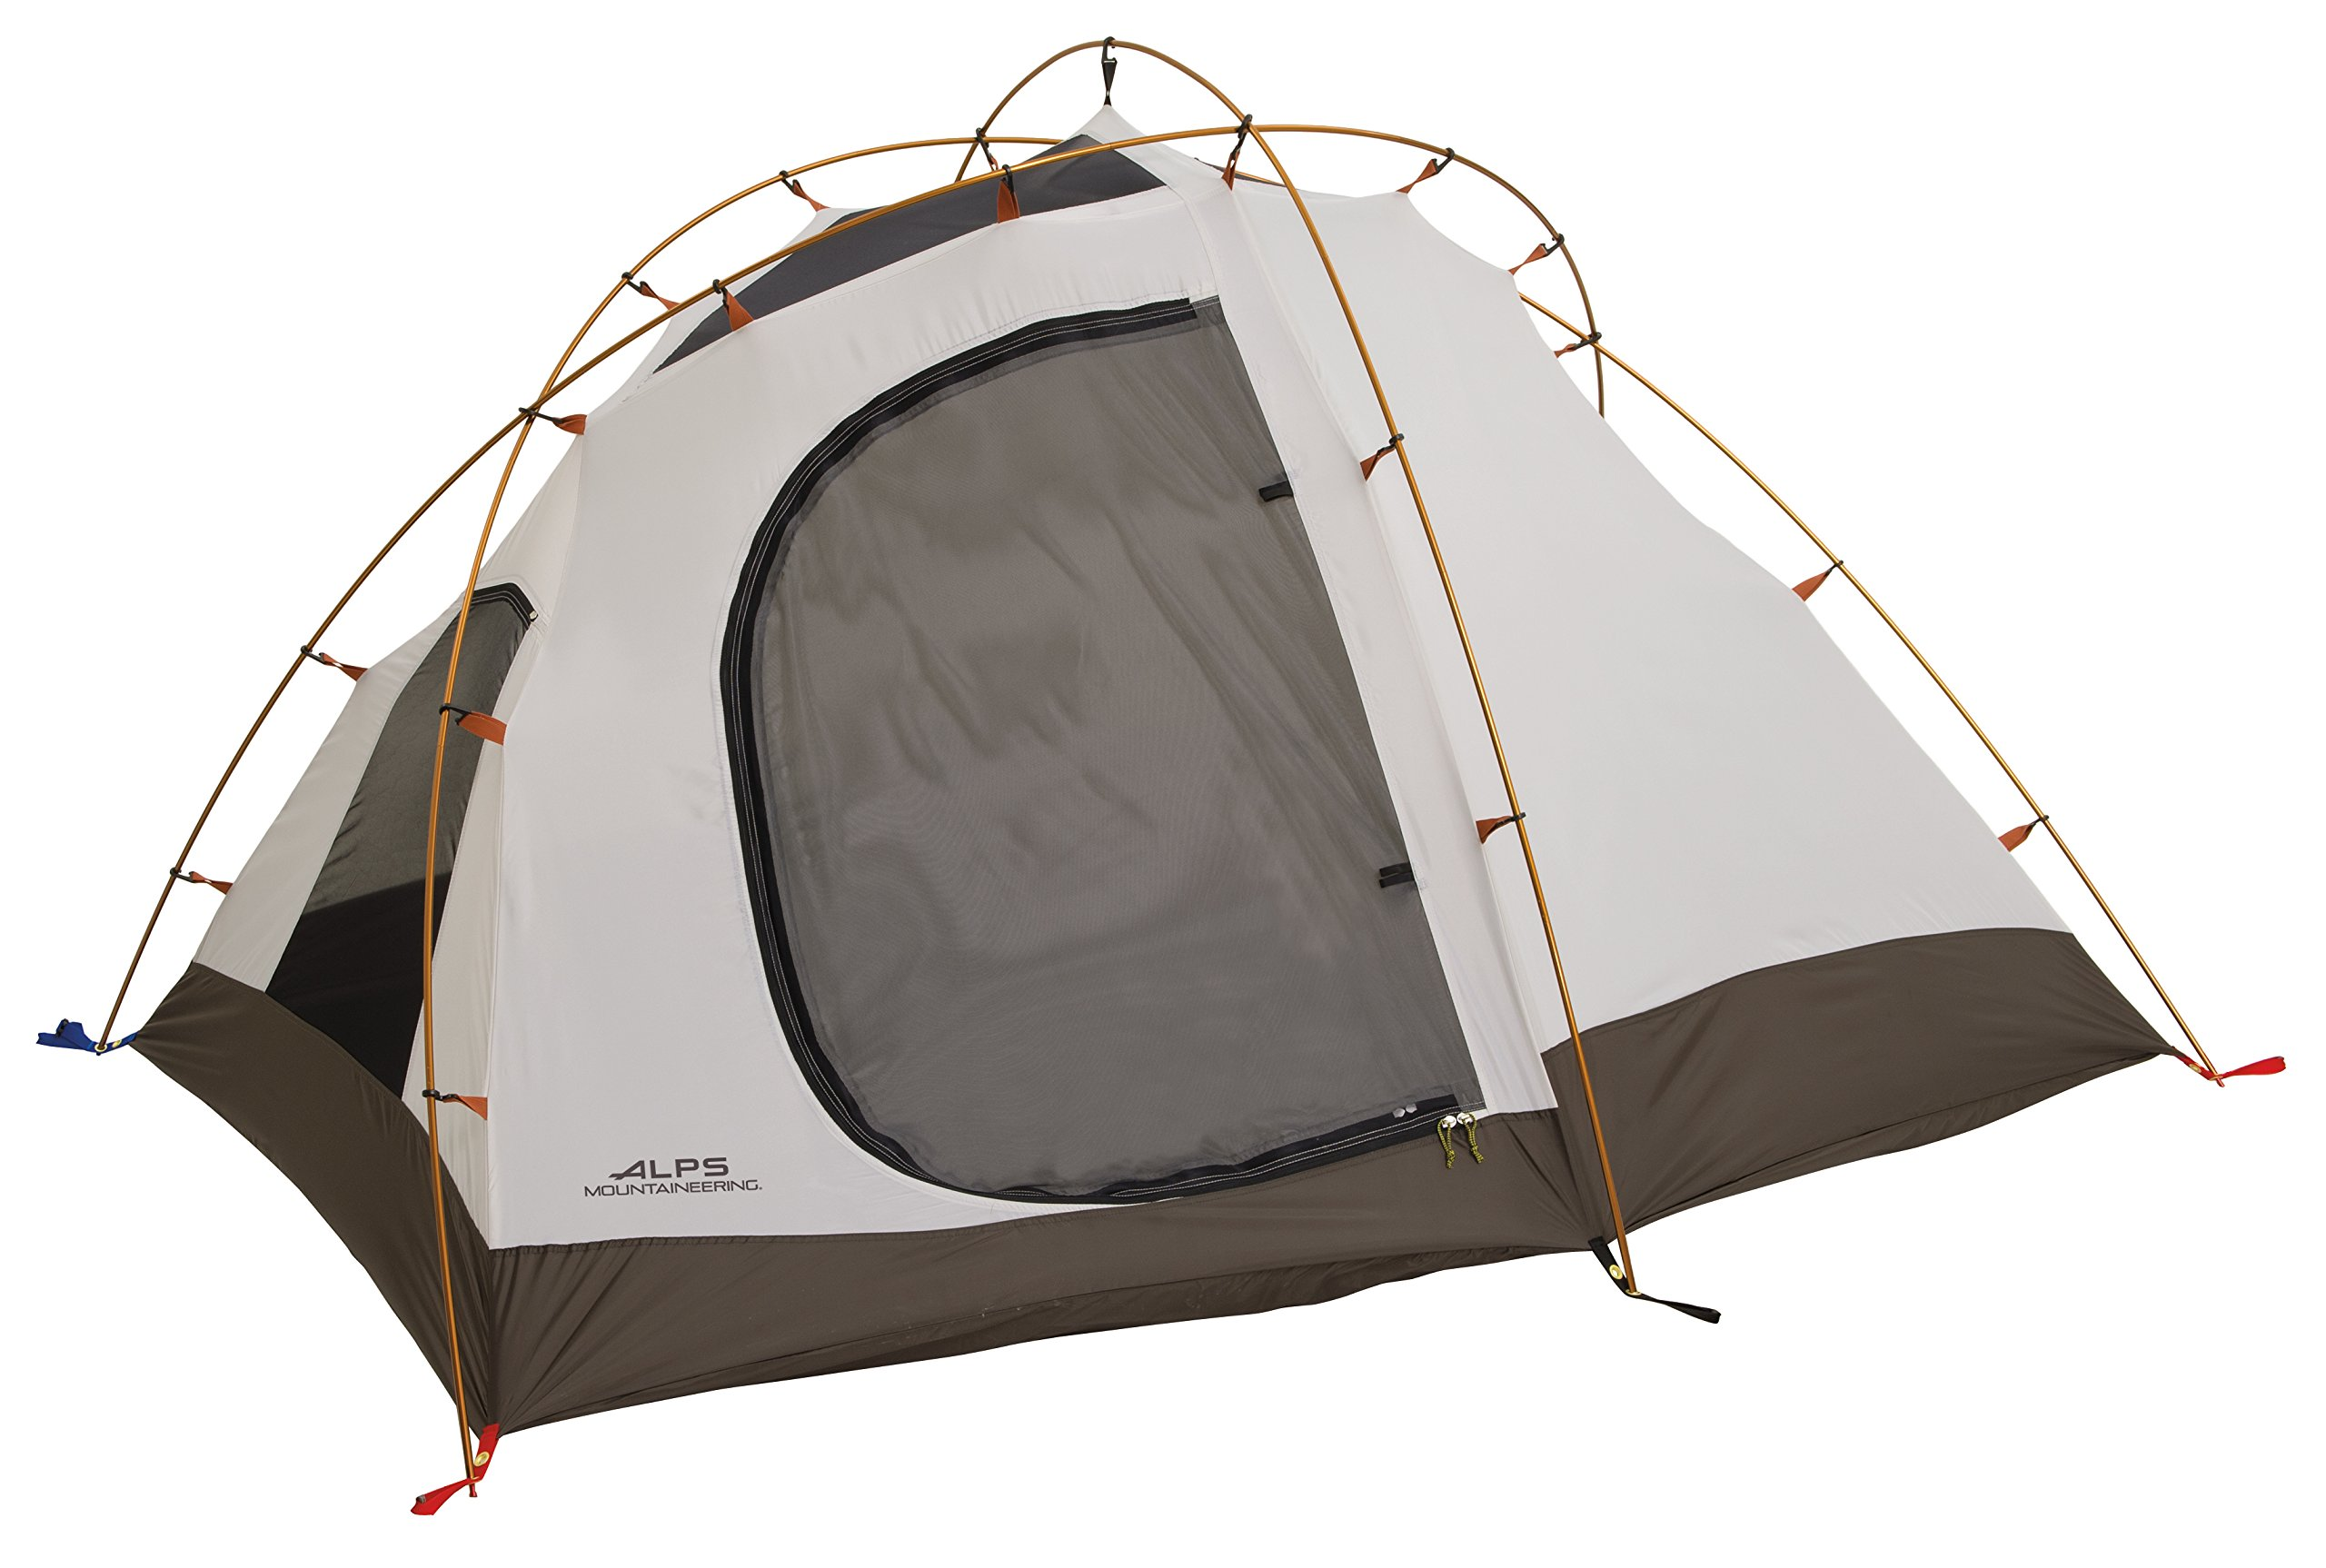 ALPS Mountaineering Extreme 2 Person Tent by ALPS Mountaineering (Image #2)